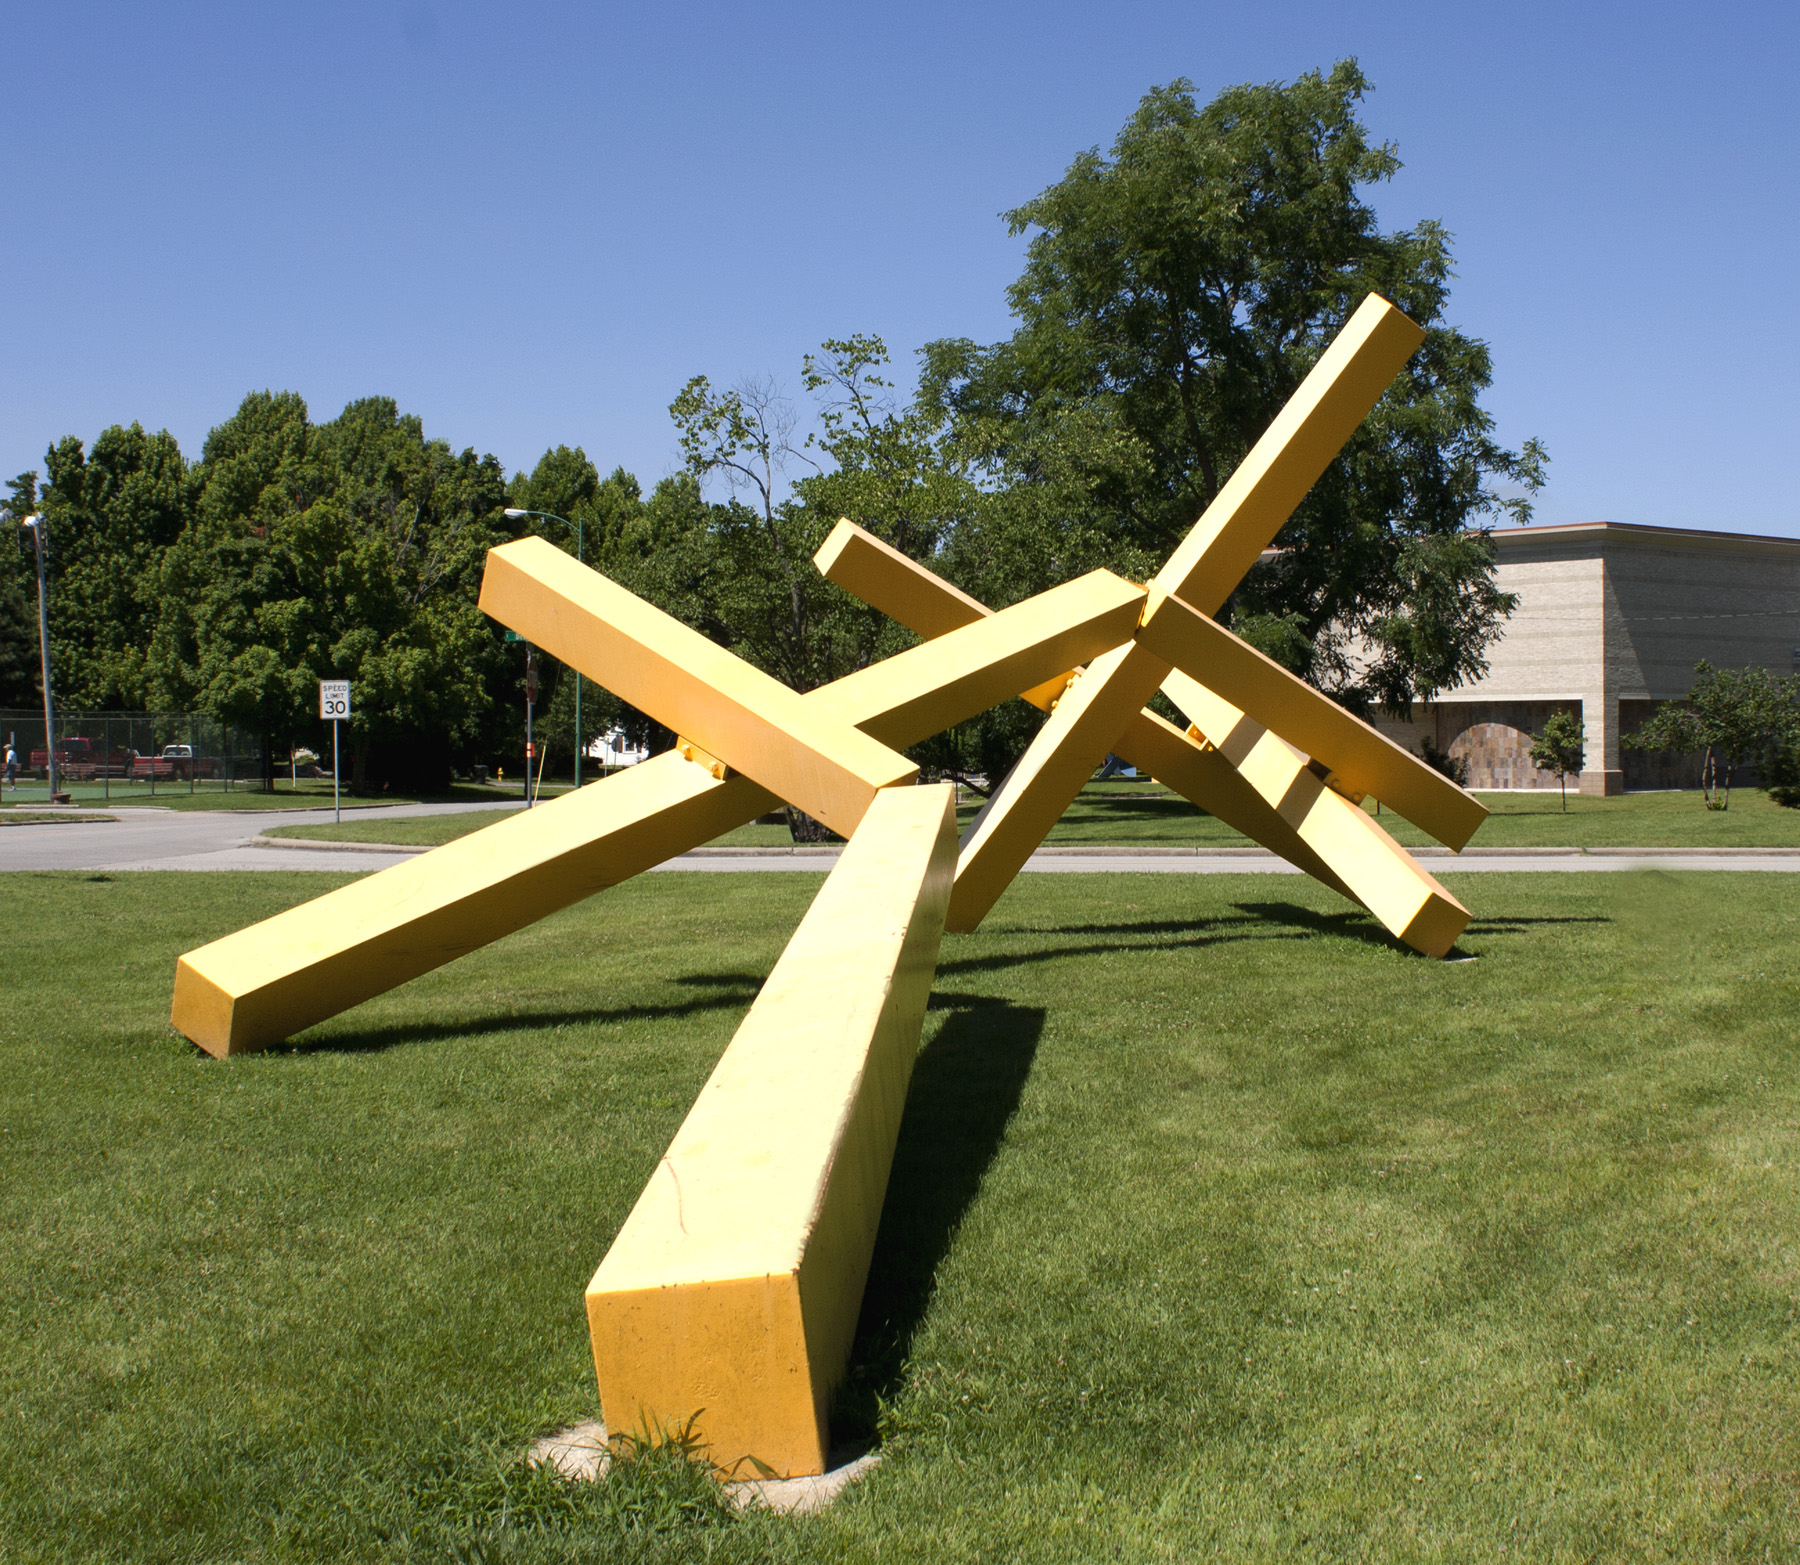 Yellow cor-ten steel sculpture made up of multiple rectangular forms